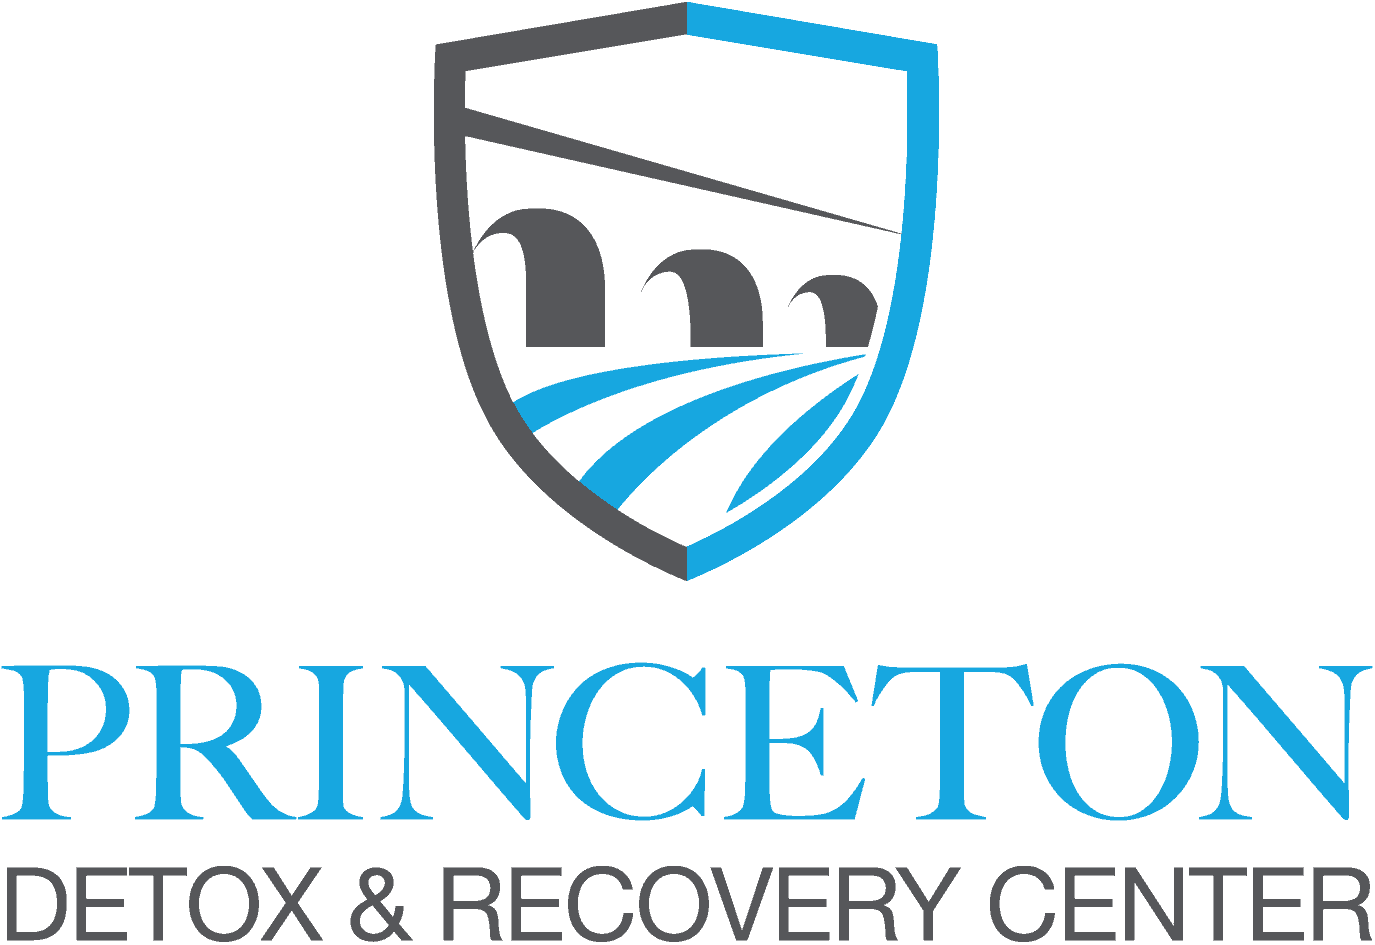 Princeton Detox and Recovery Center Vertical Logo